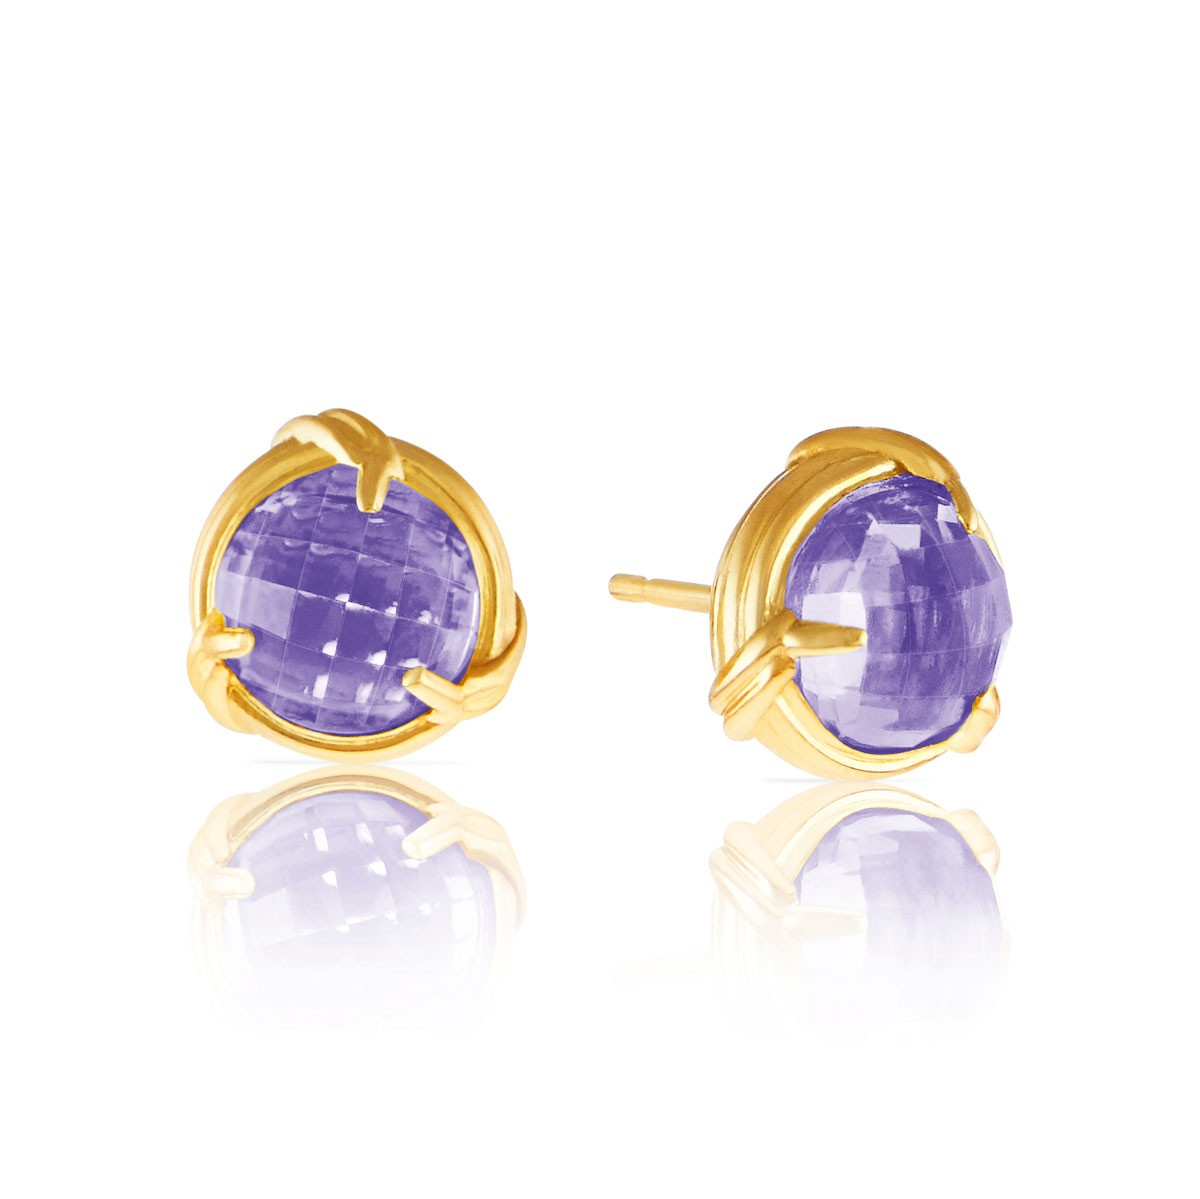 Fantasies Amethyst Stud Earrings in 18K yellow gold